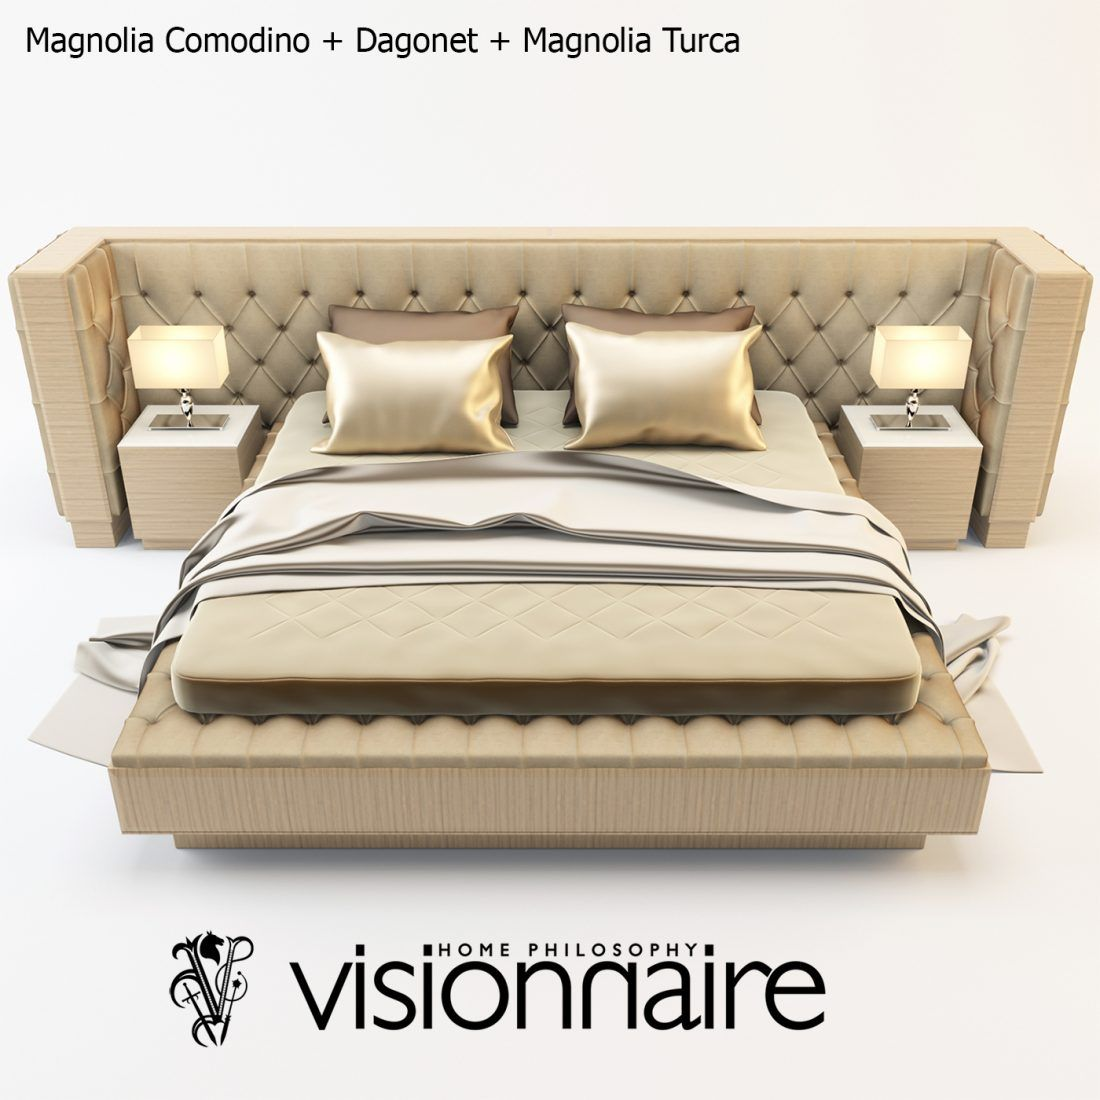 3d Magnolia Comodino Bed Model 165 Free Download In 2020 Bed